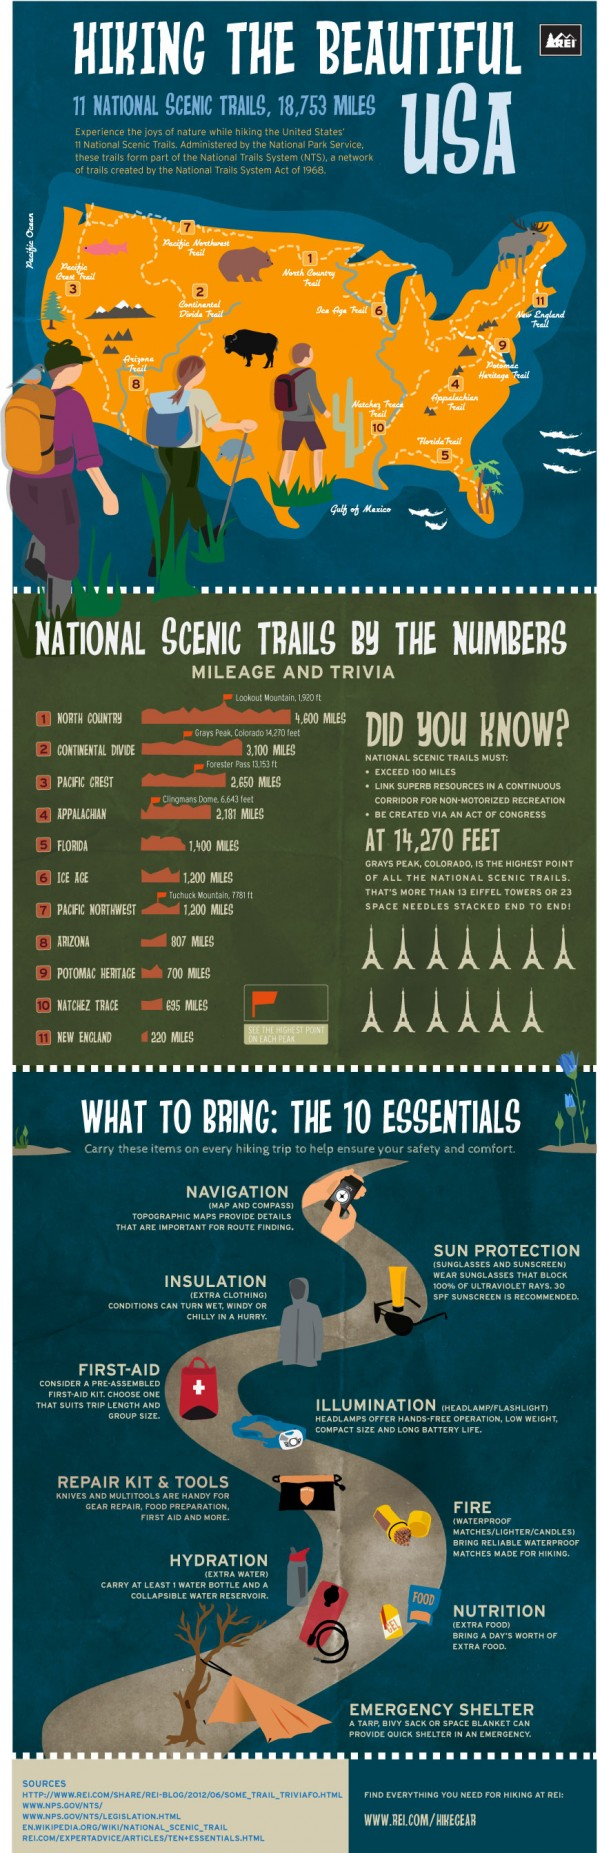 REI-Hiking-Infographic